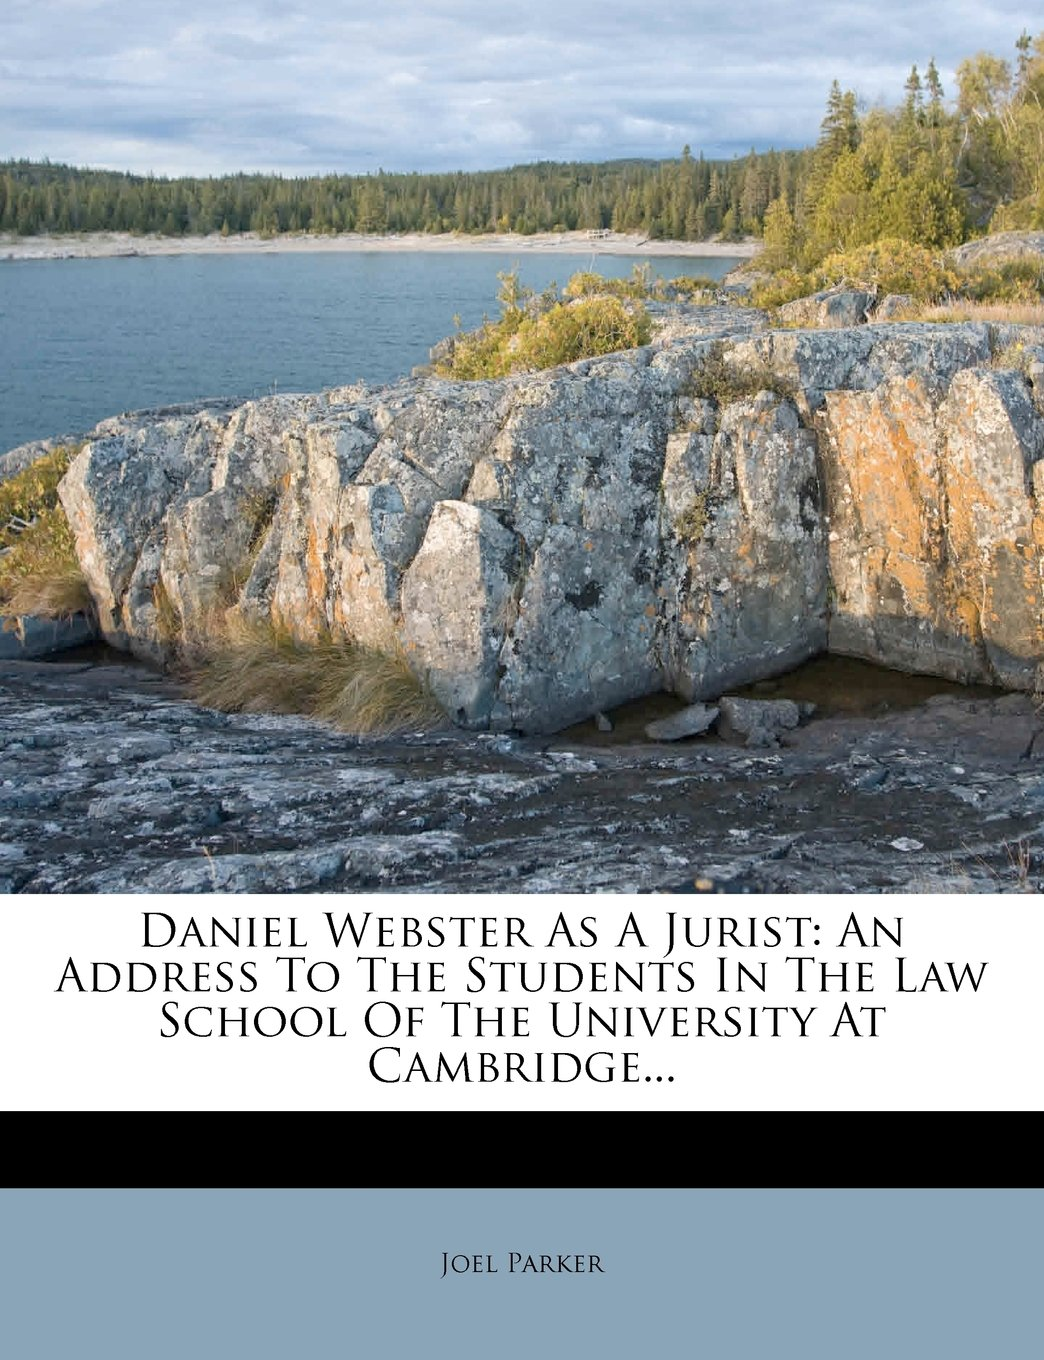 Daniel Webster As A Jurist: An Address To The Students In The Law School Of The University At Cambridge... pdf